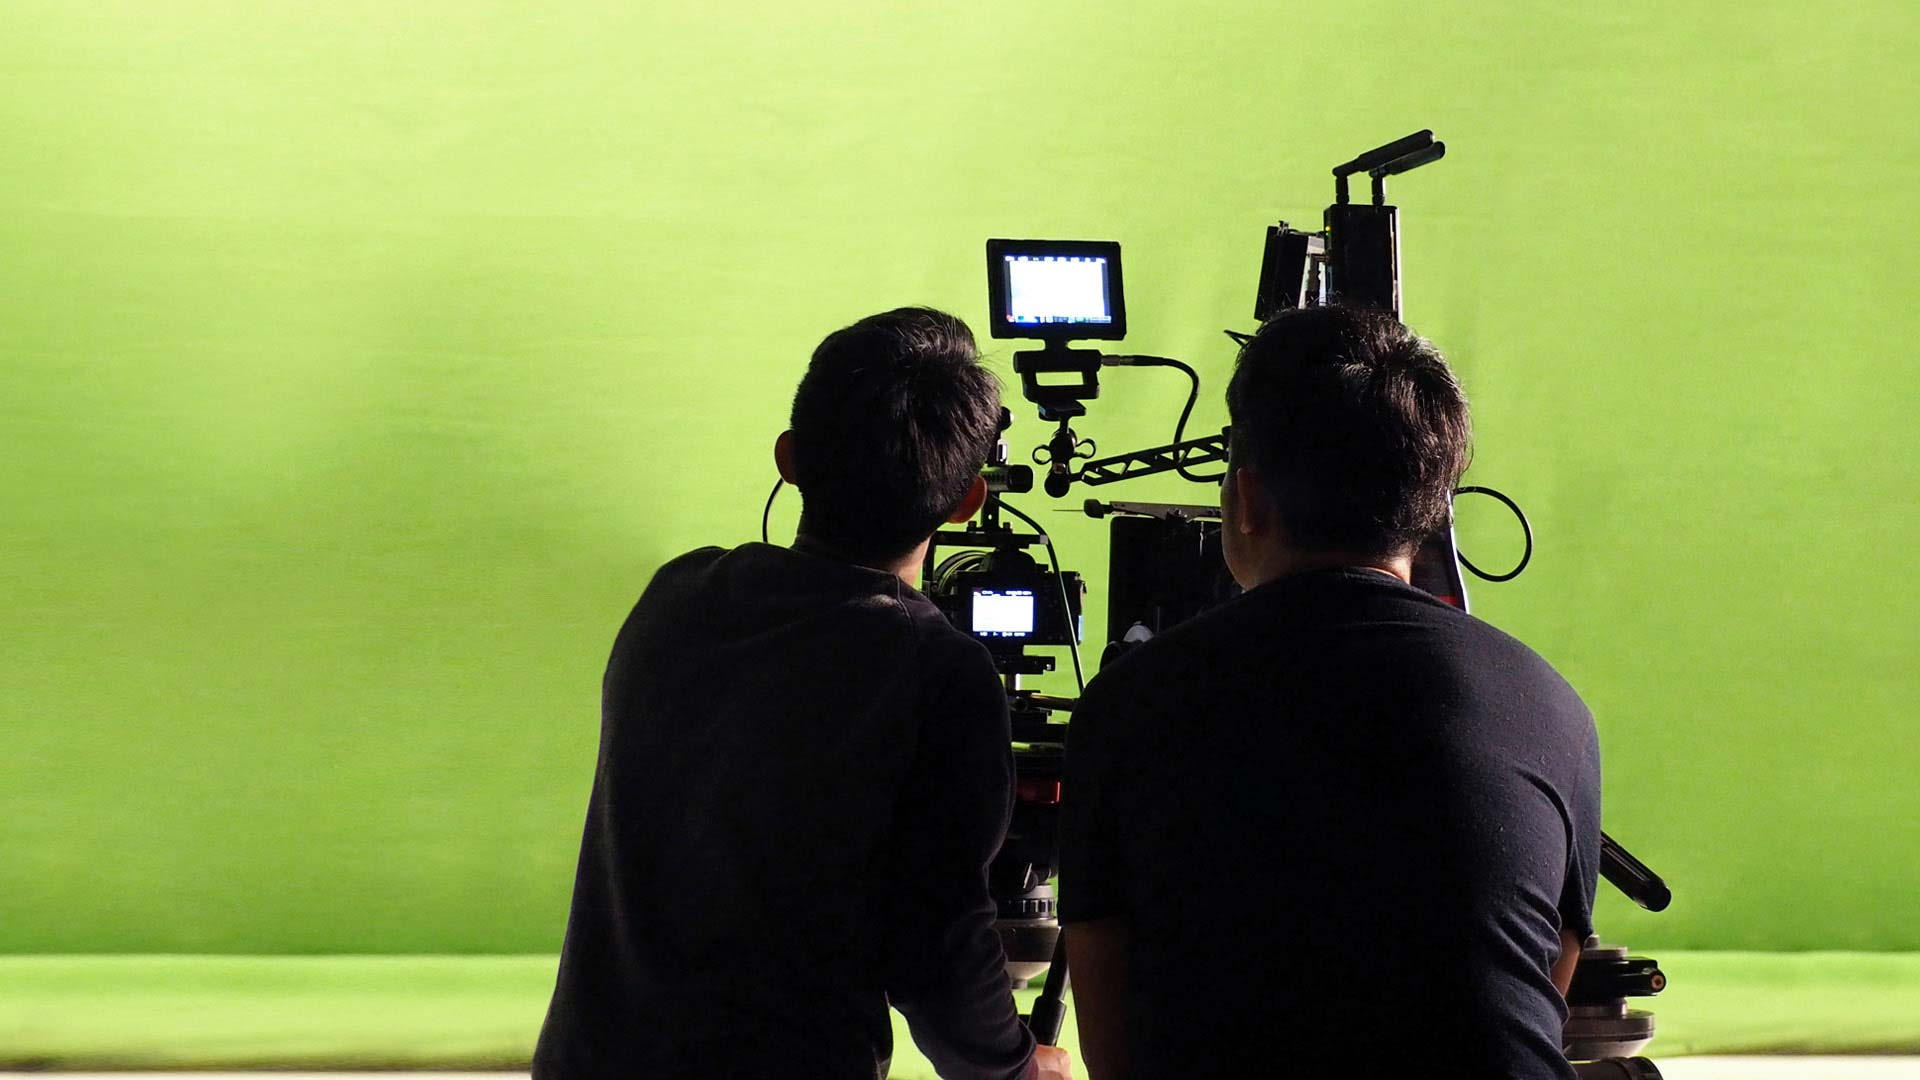 Filming on a greenscreen stage.